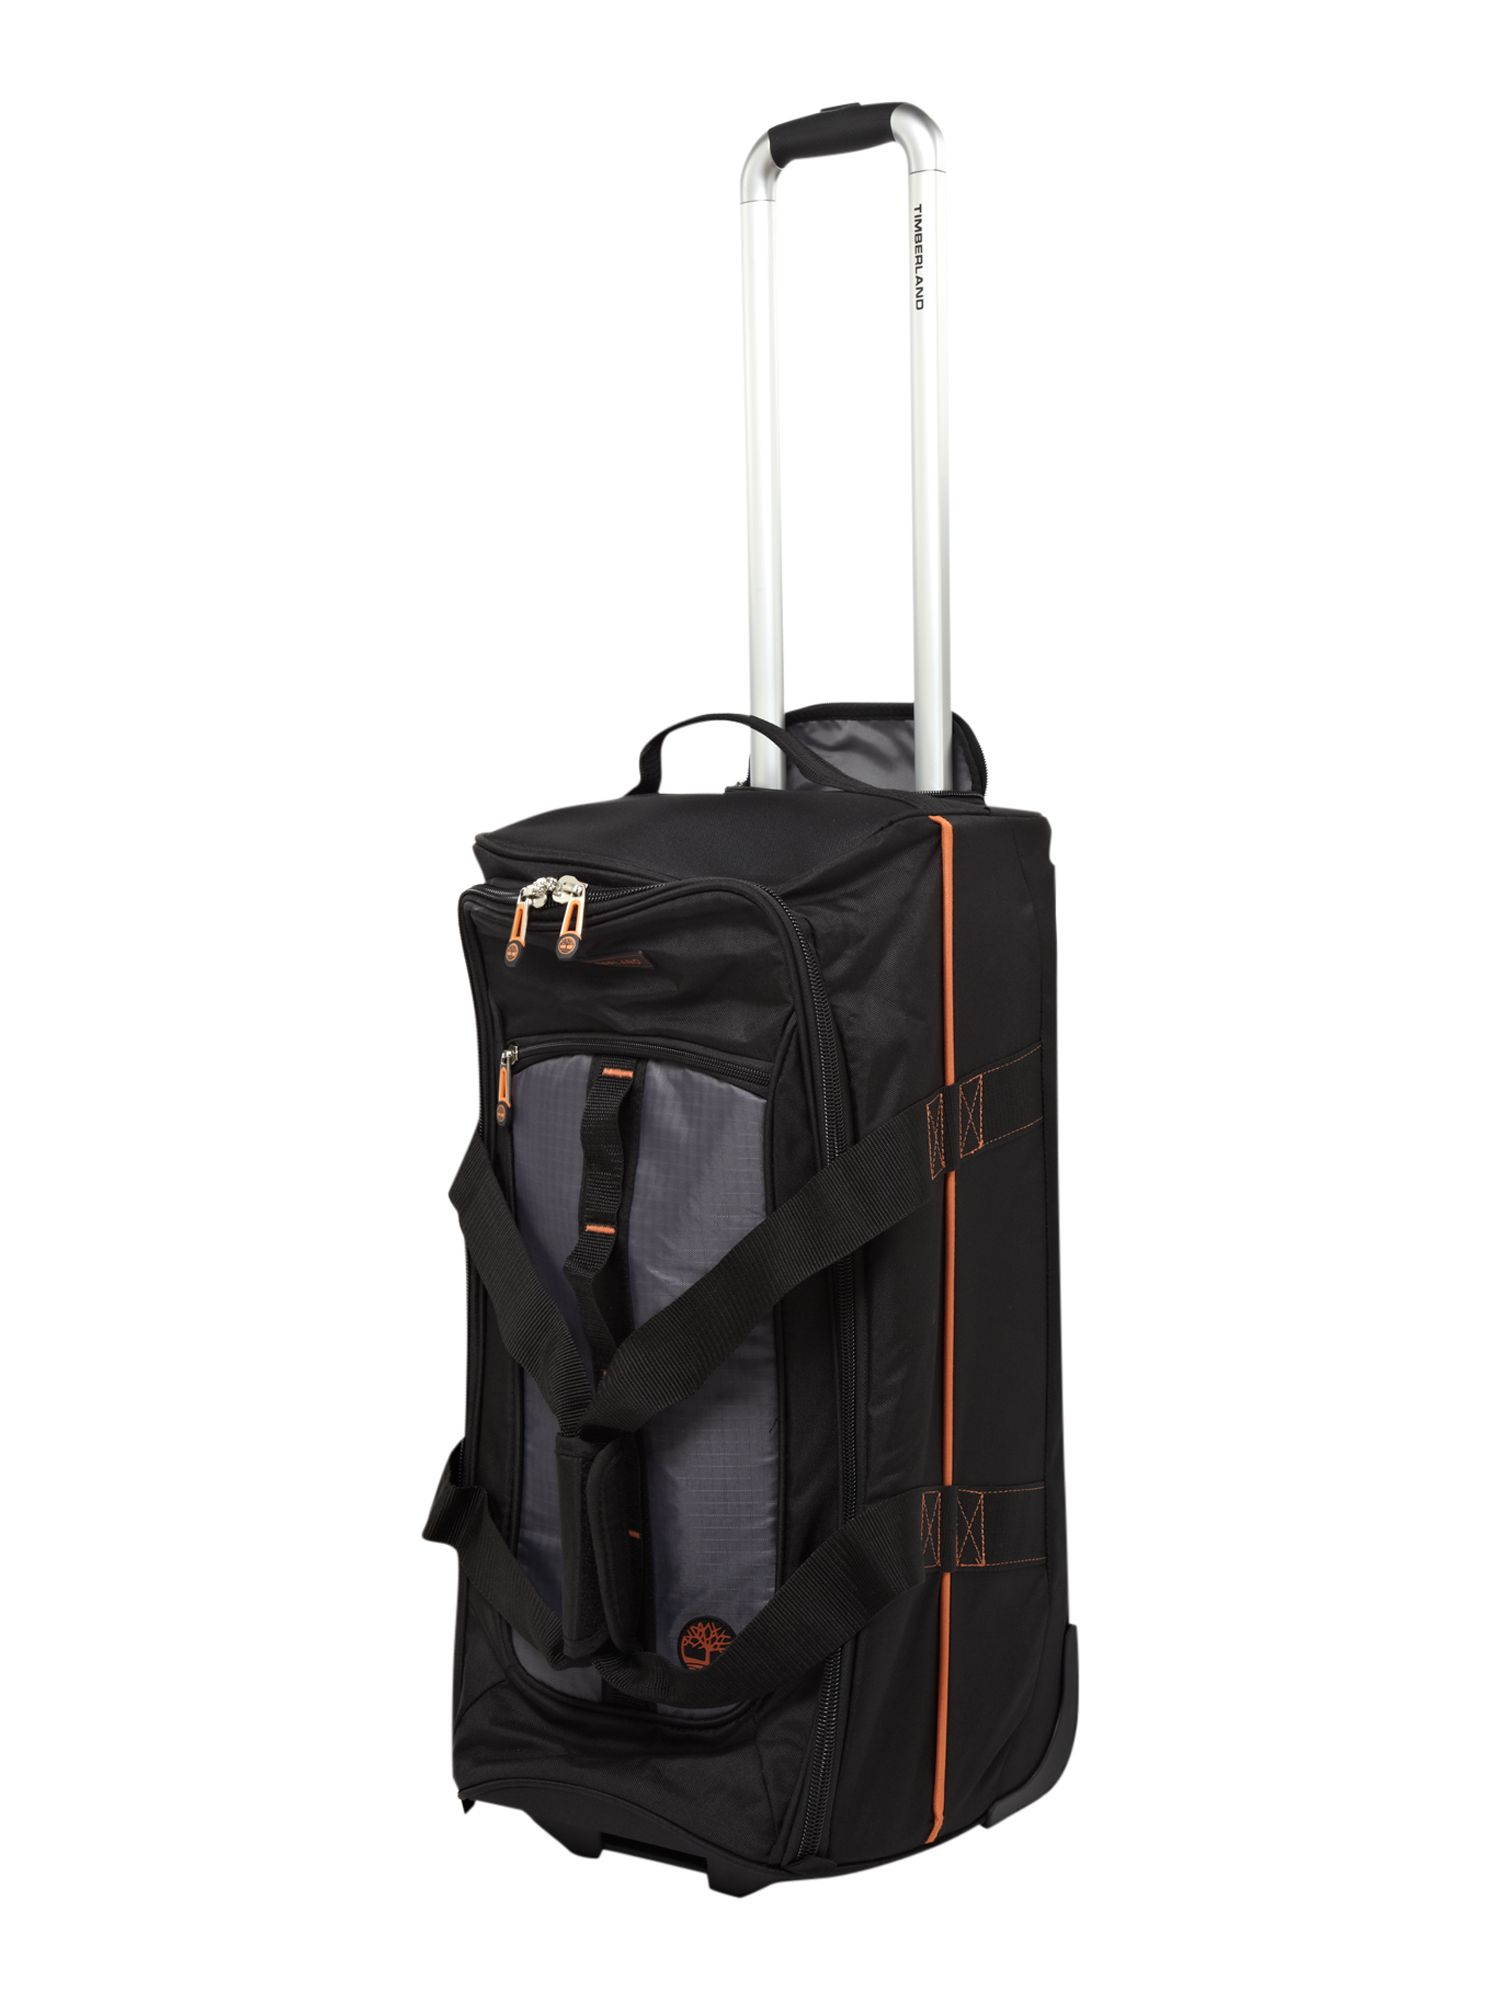 Jay Peak 24 Wheeled Duffle Black